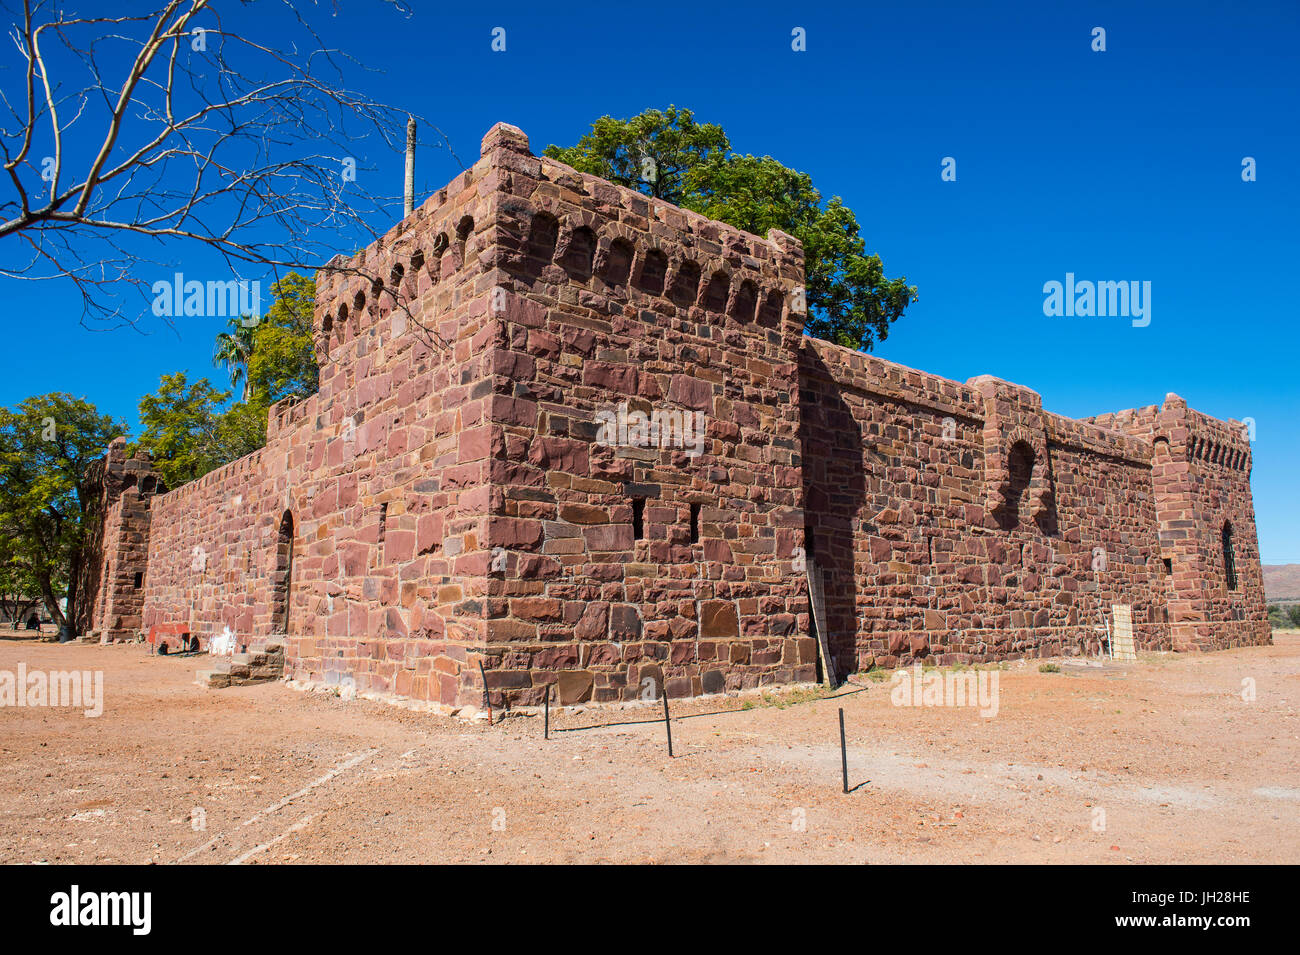 Duwisib Castle, central Namibia, Africa - Stock Image